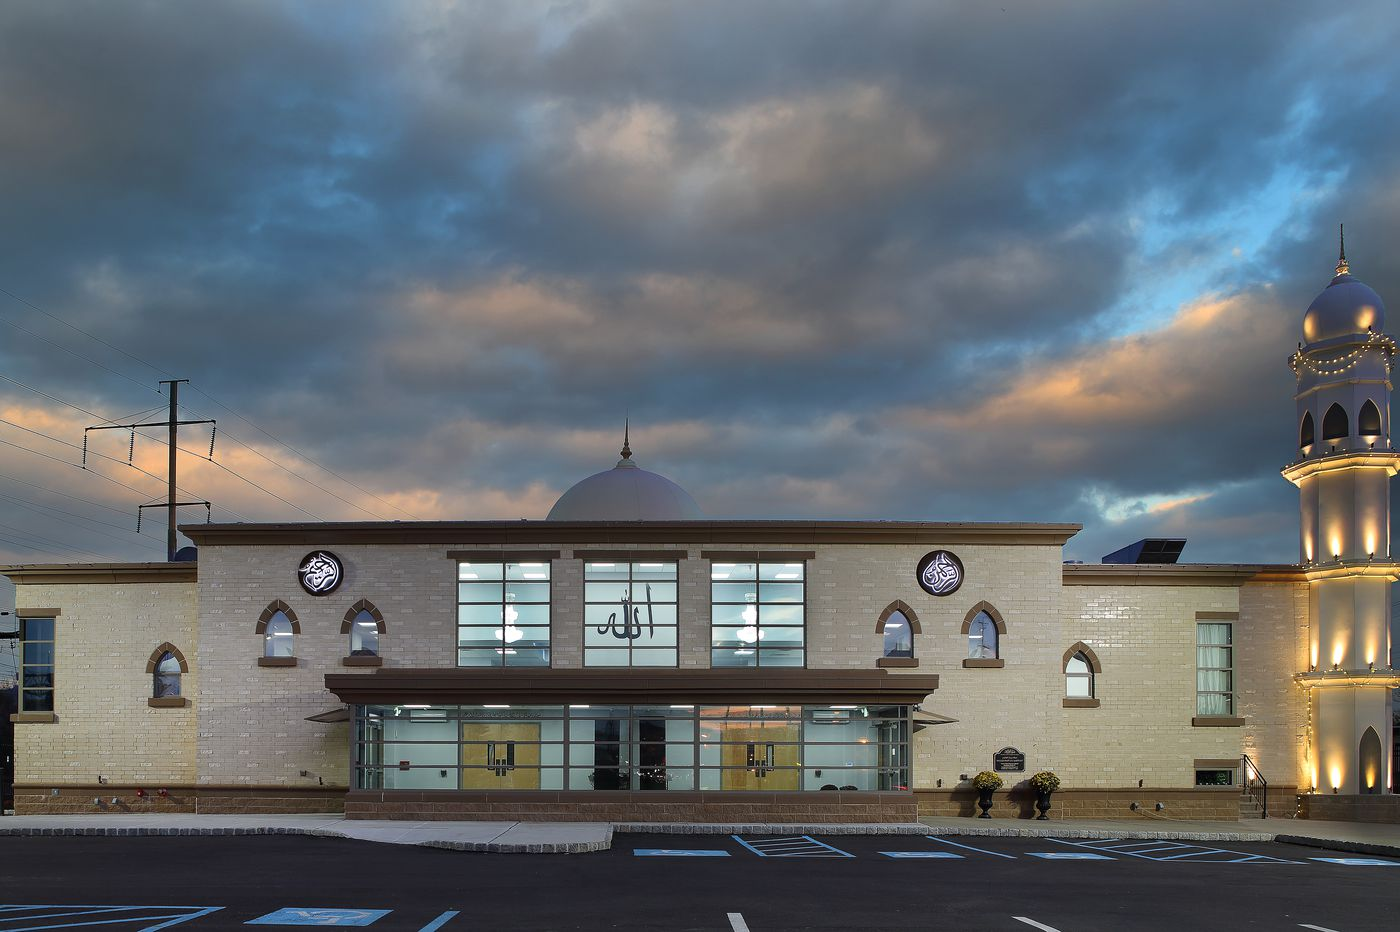 Philadelphia Muslims make a statement with opening of new mosque   Inga Saffron